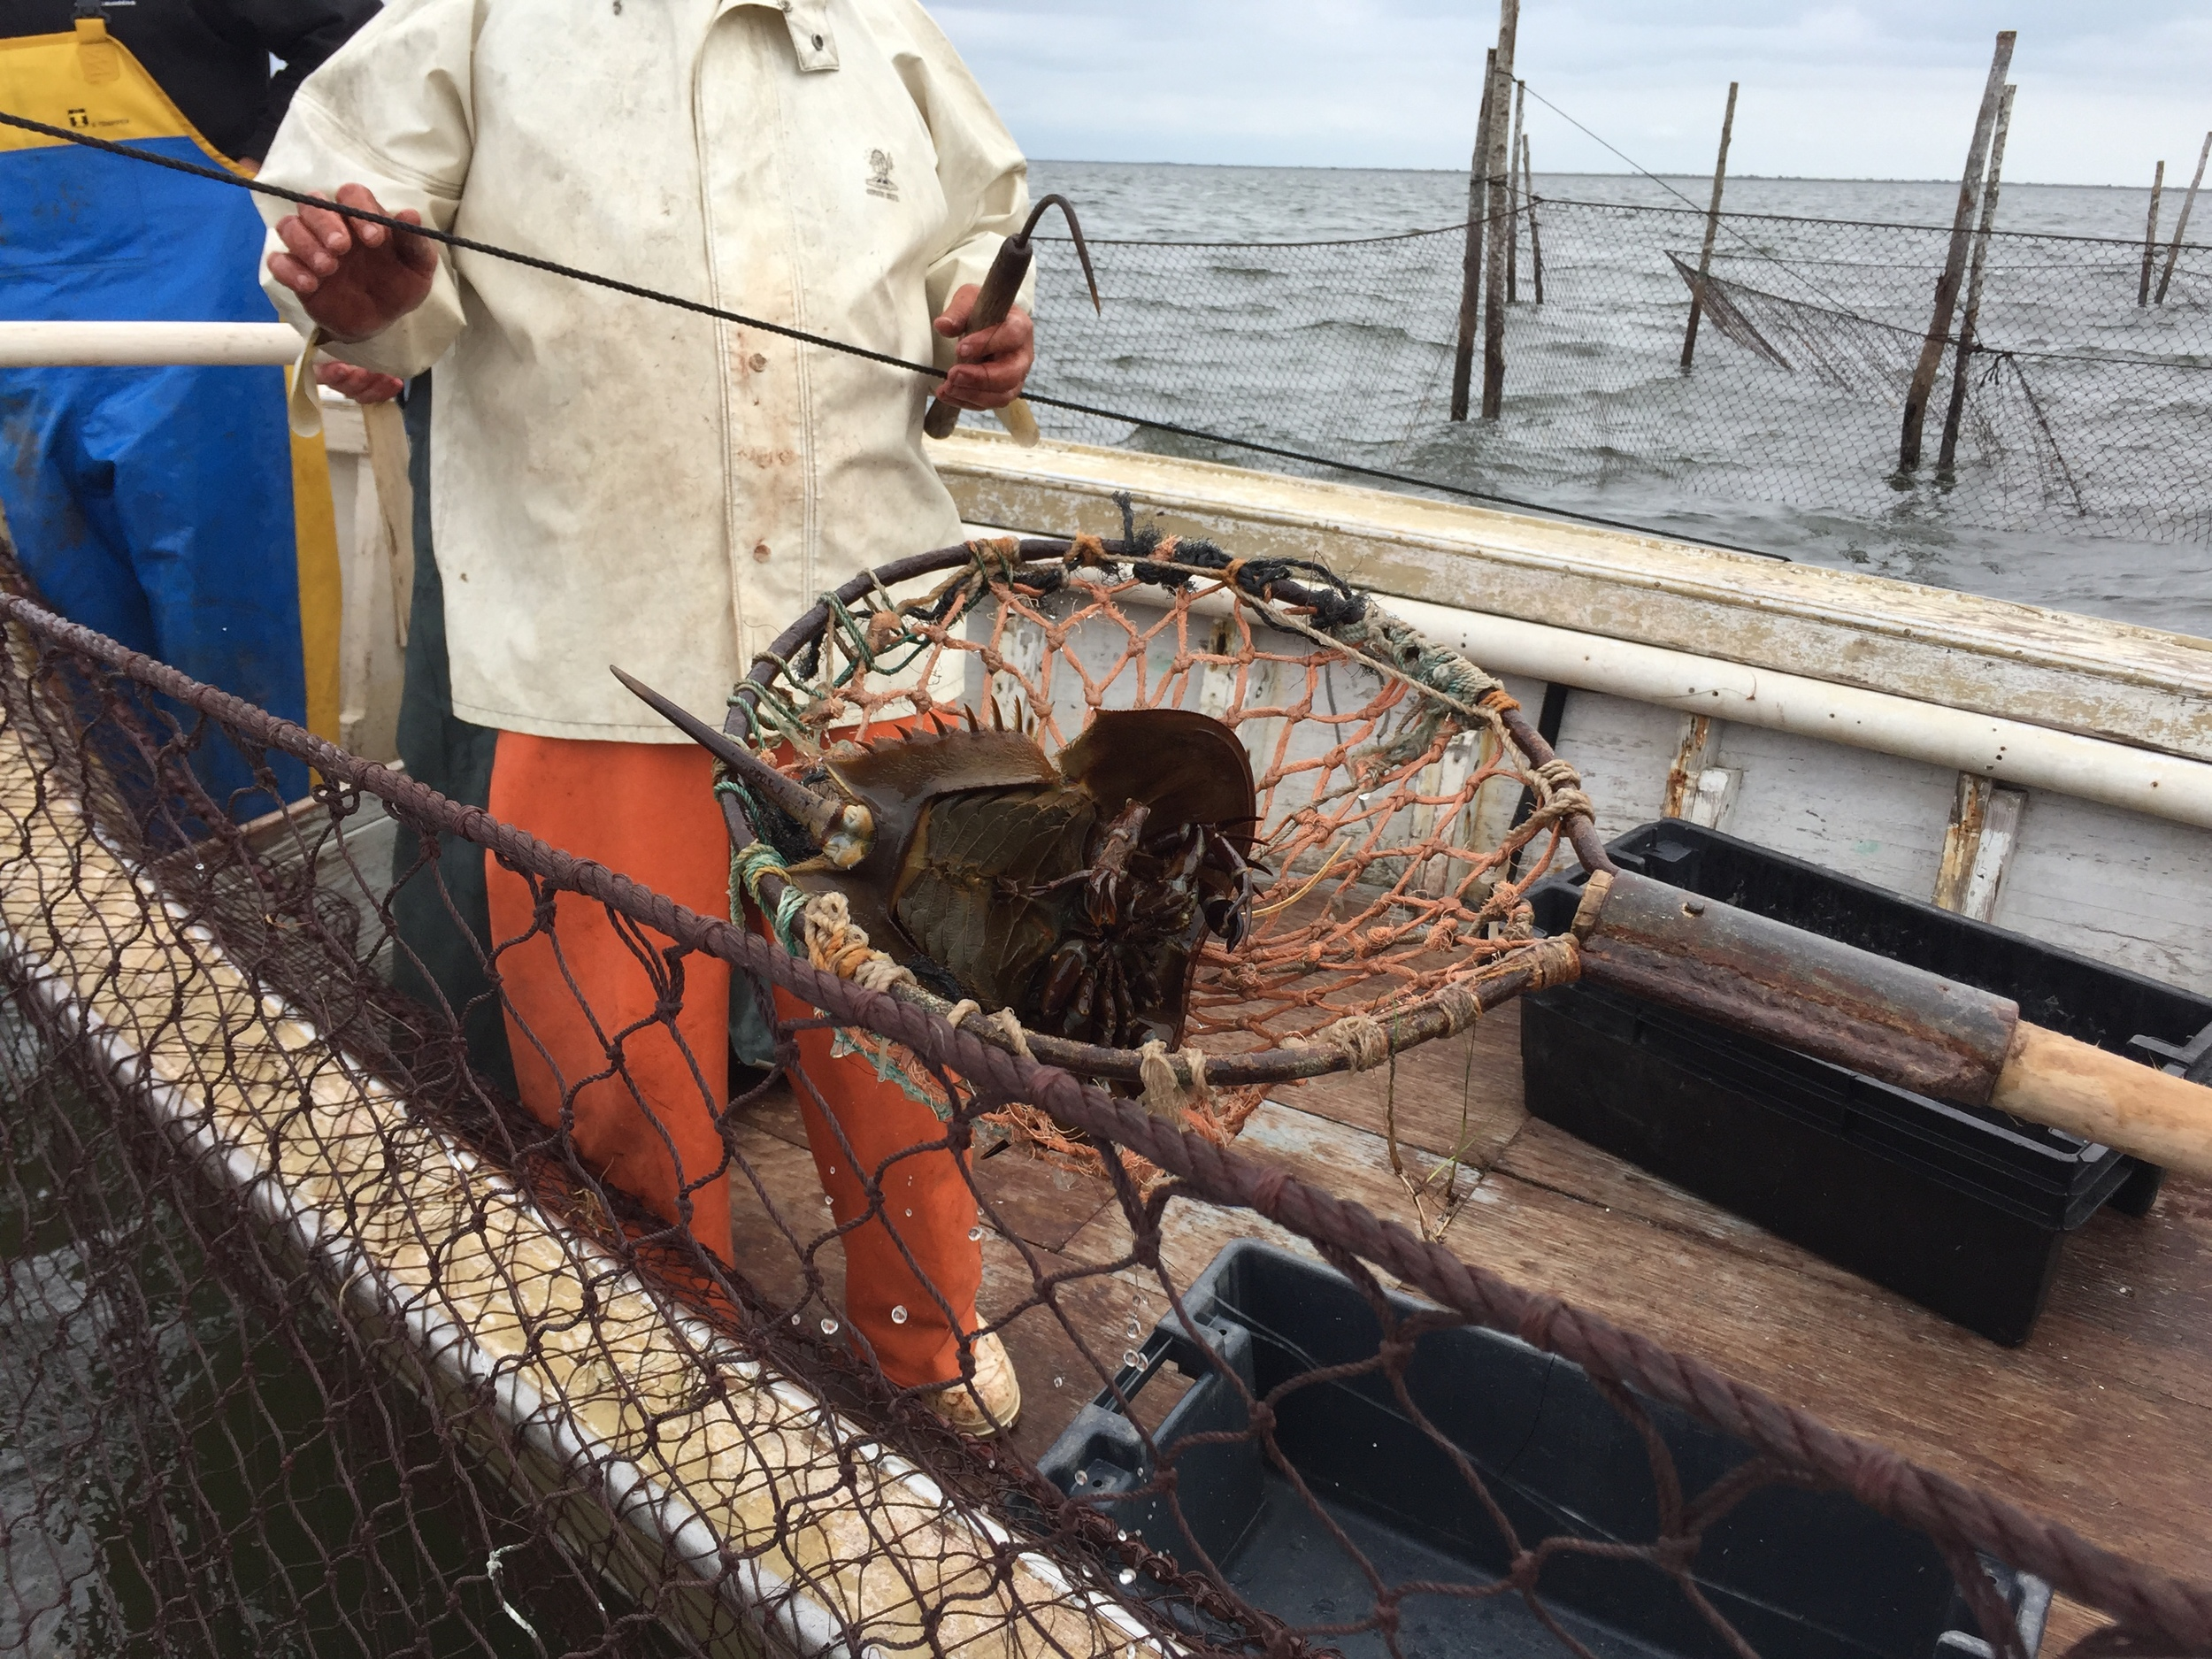 horseshoe crab being thrown back into the ocean